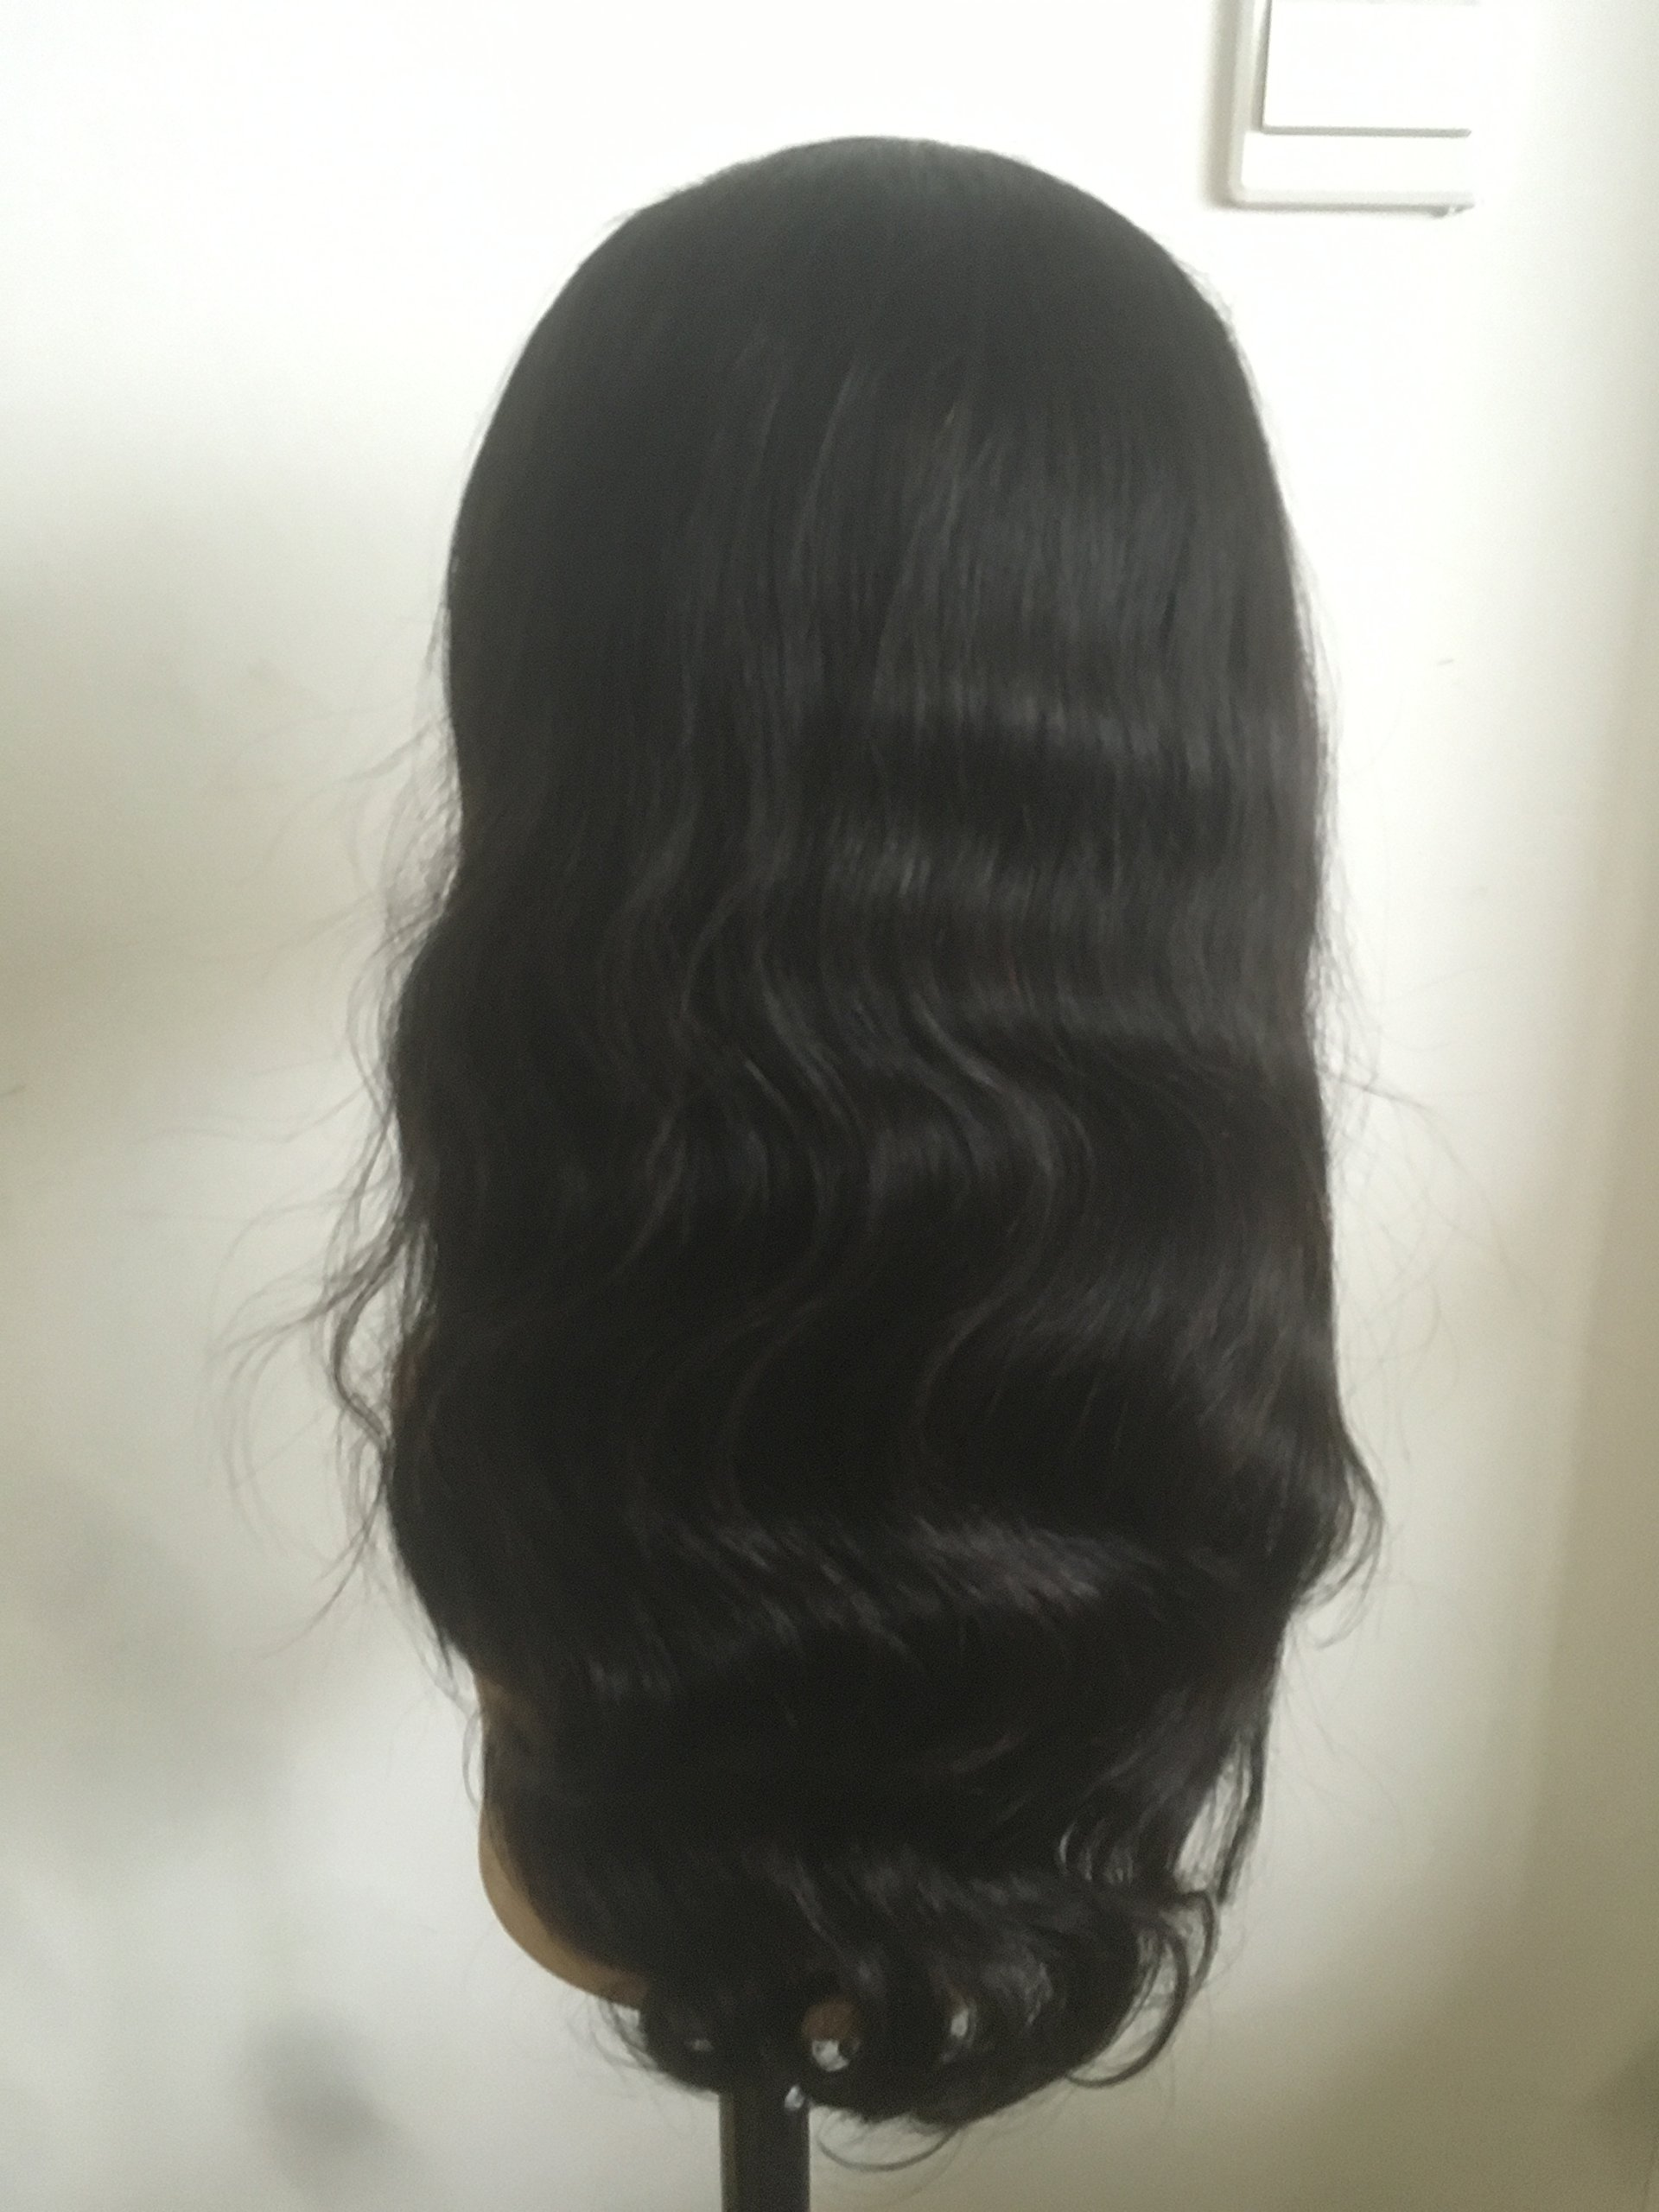 100% top quality indian remi full lace wig 16inch